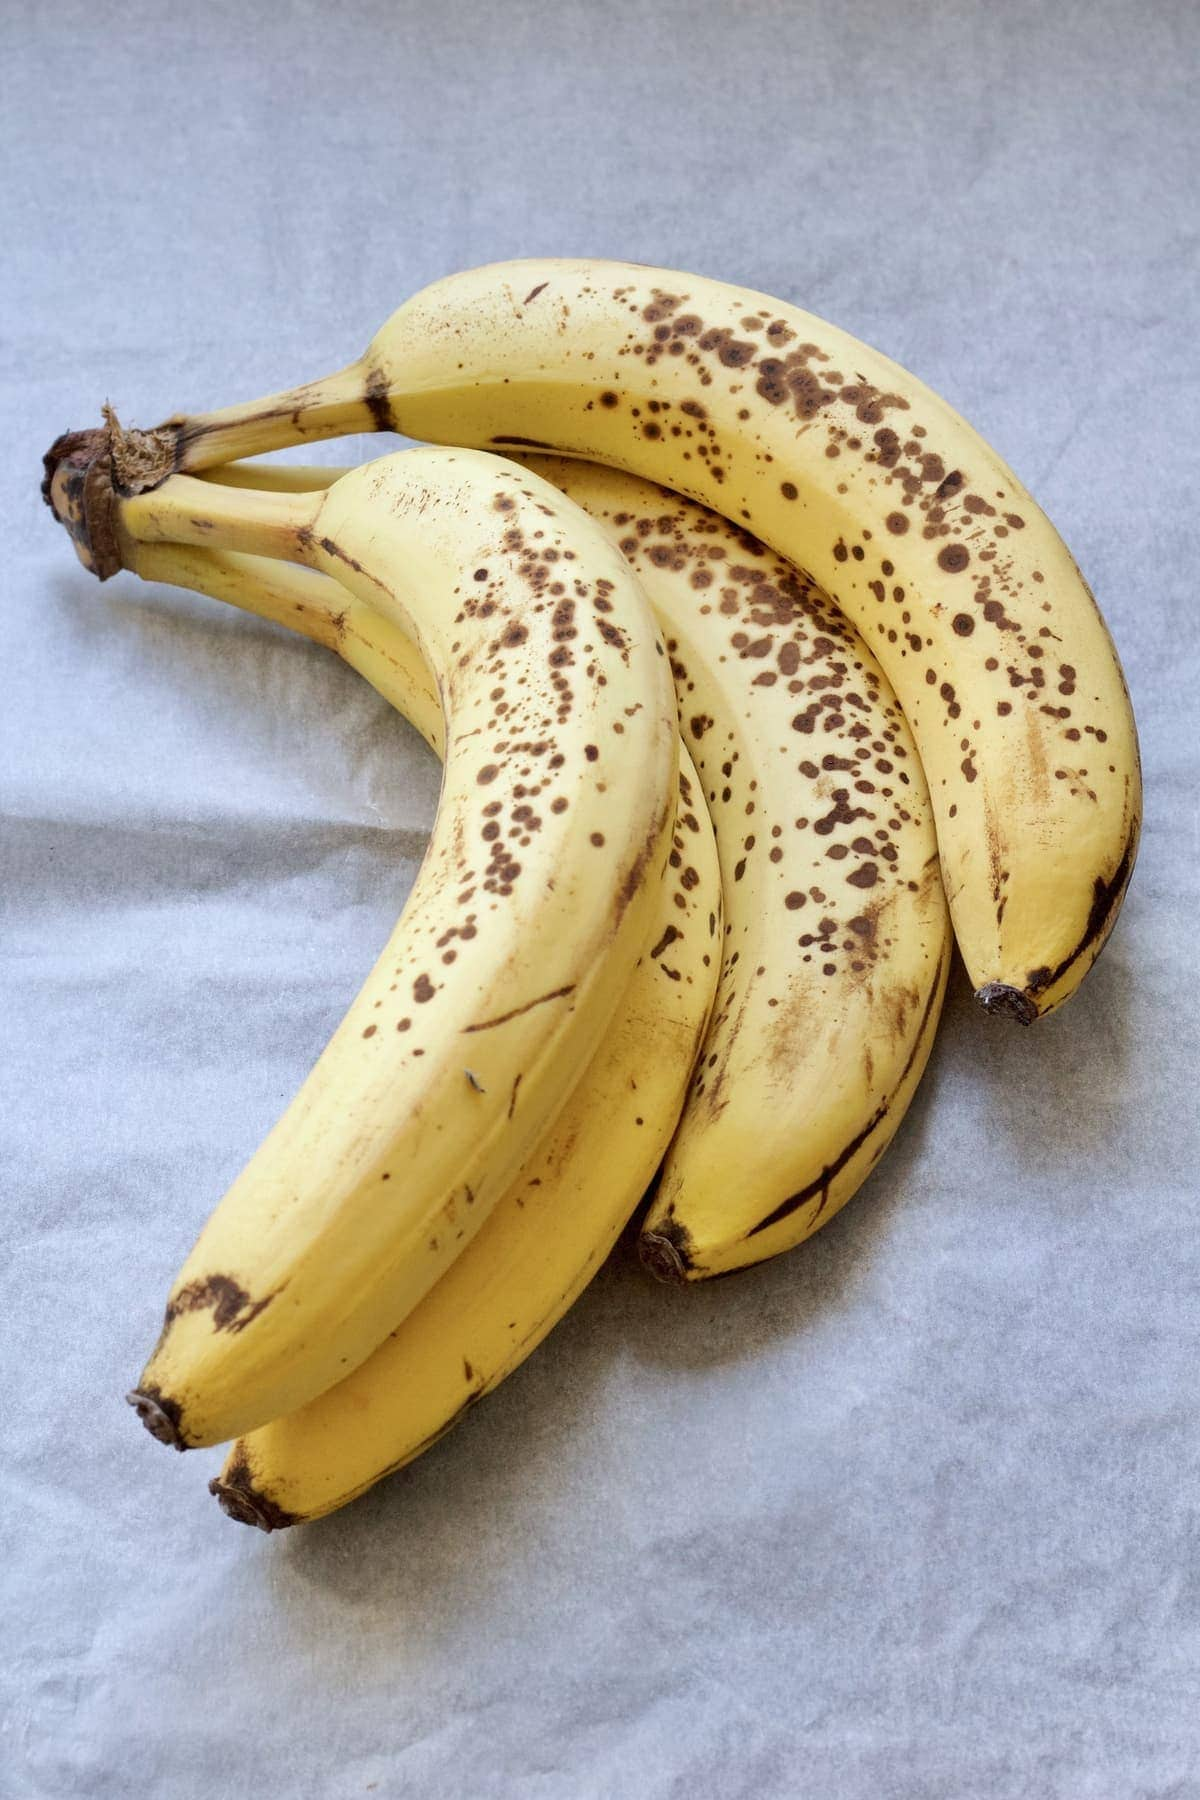 Bunch of ripe bananas.